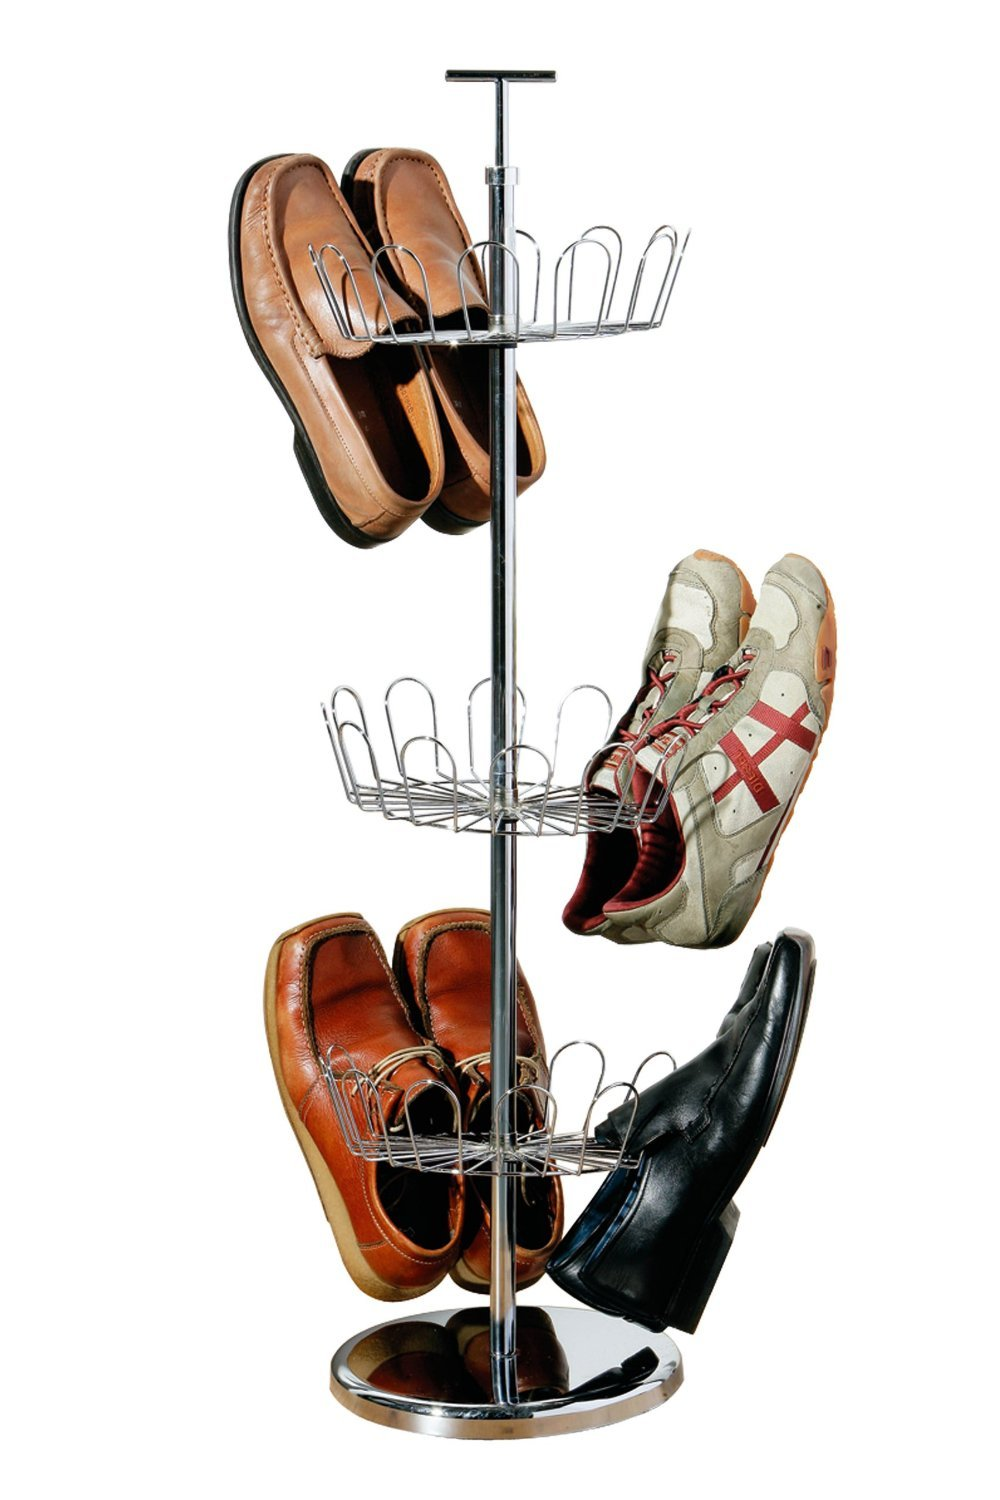 3 Tier Revolving Shoe Rack Made Of Chrome Material With Round Base:  Amazon.co.uk: Kitchen U0026 Home